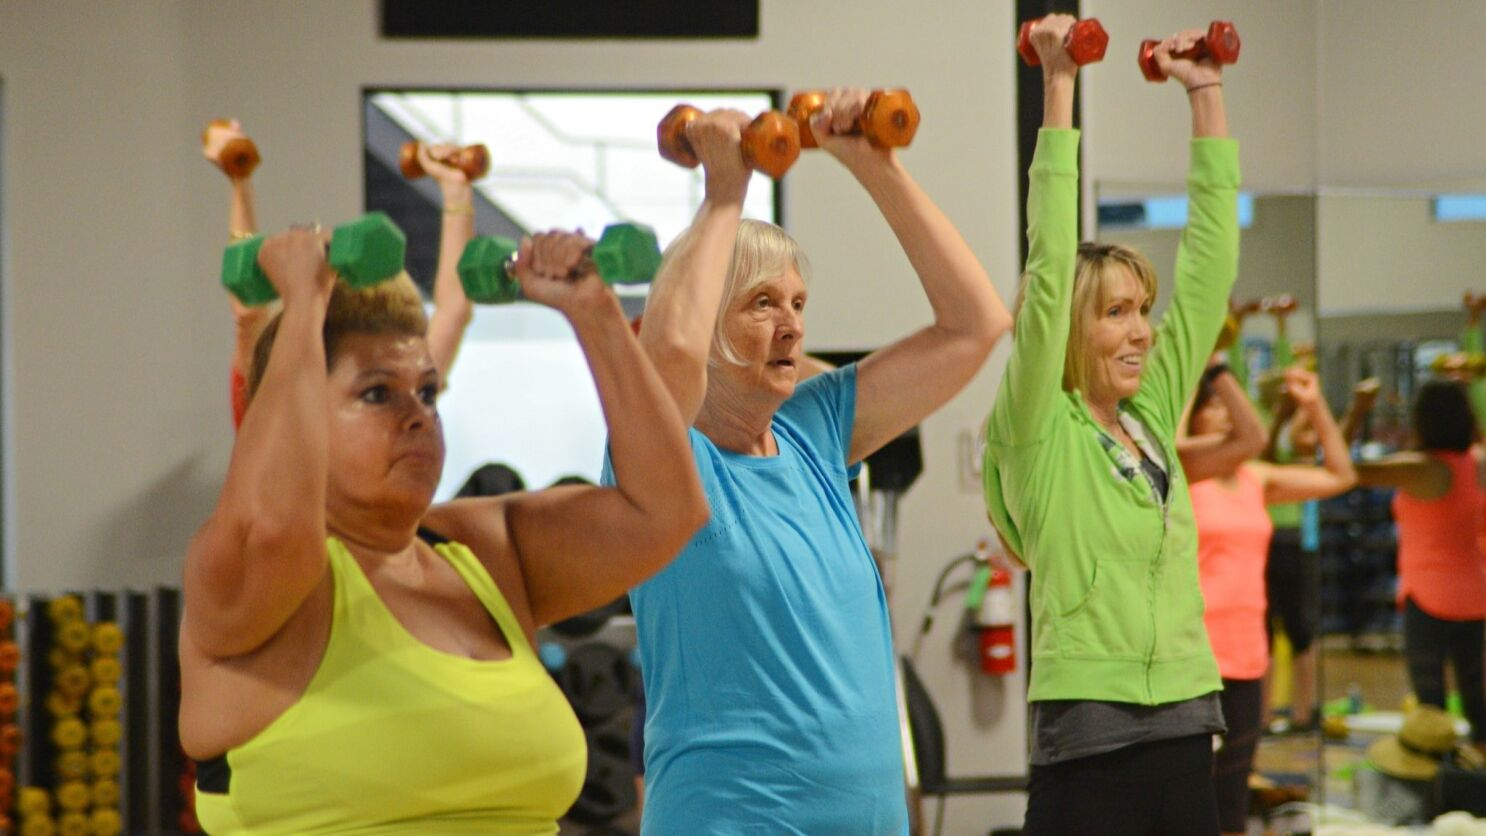 Cancer Patients Find Strength Through Exercise Camaraderie